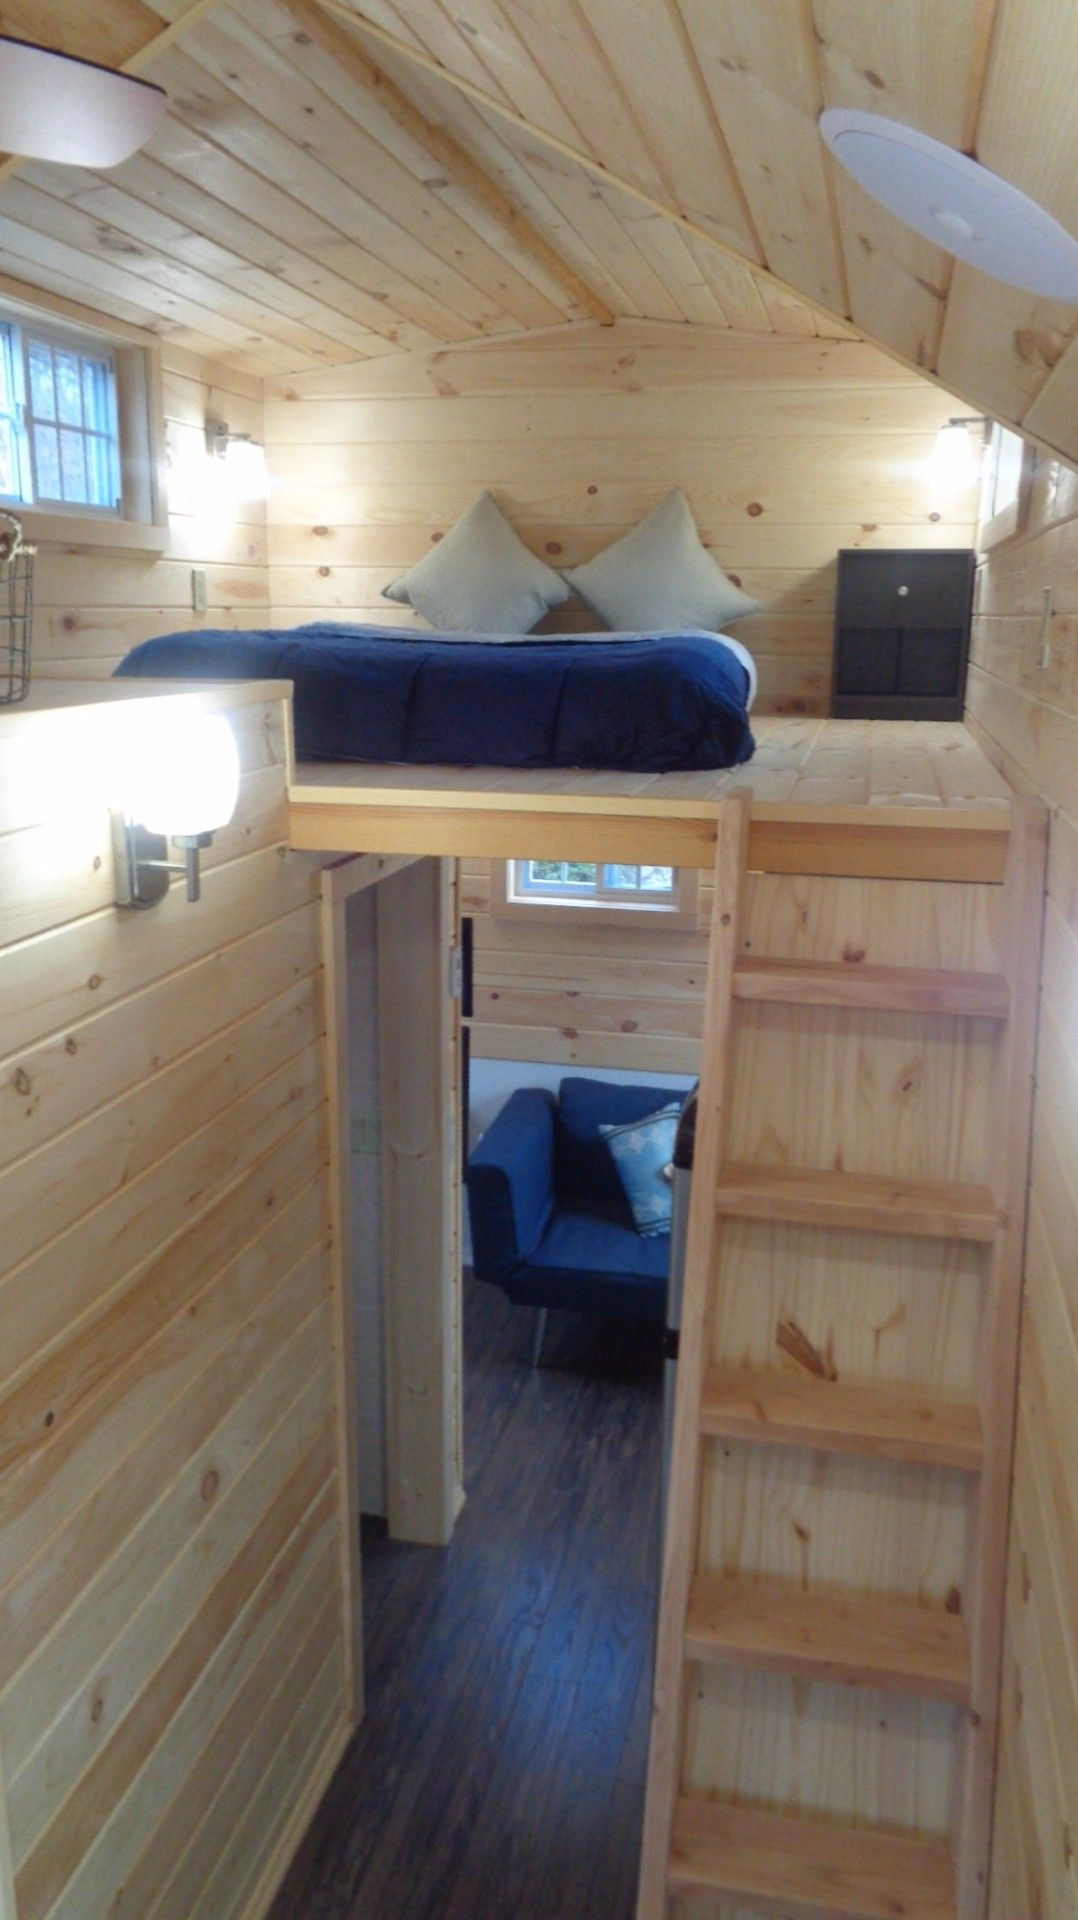 This Is The Cie Model Thow By Nj Tiny House That S For Little Build Includes Two Smart Tvs A Living Room Nook L Shaped Kitchen And Even